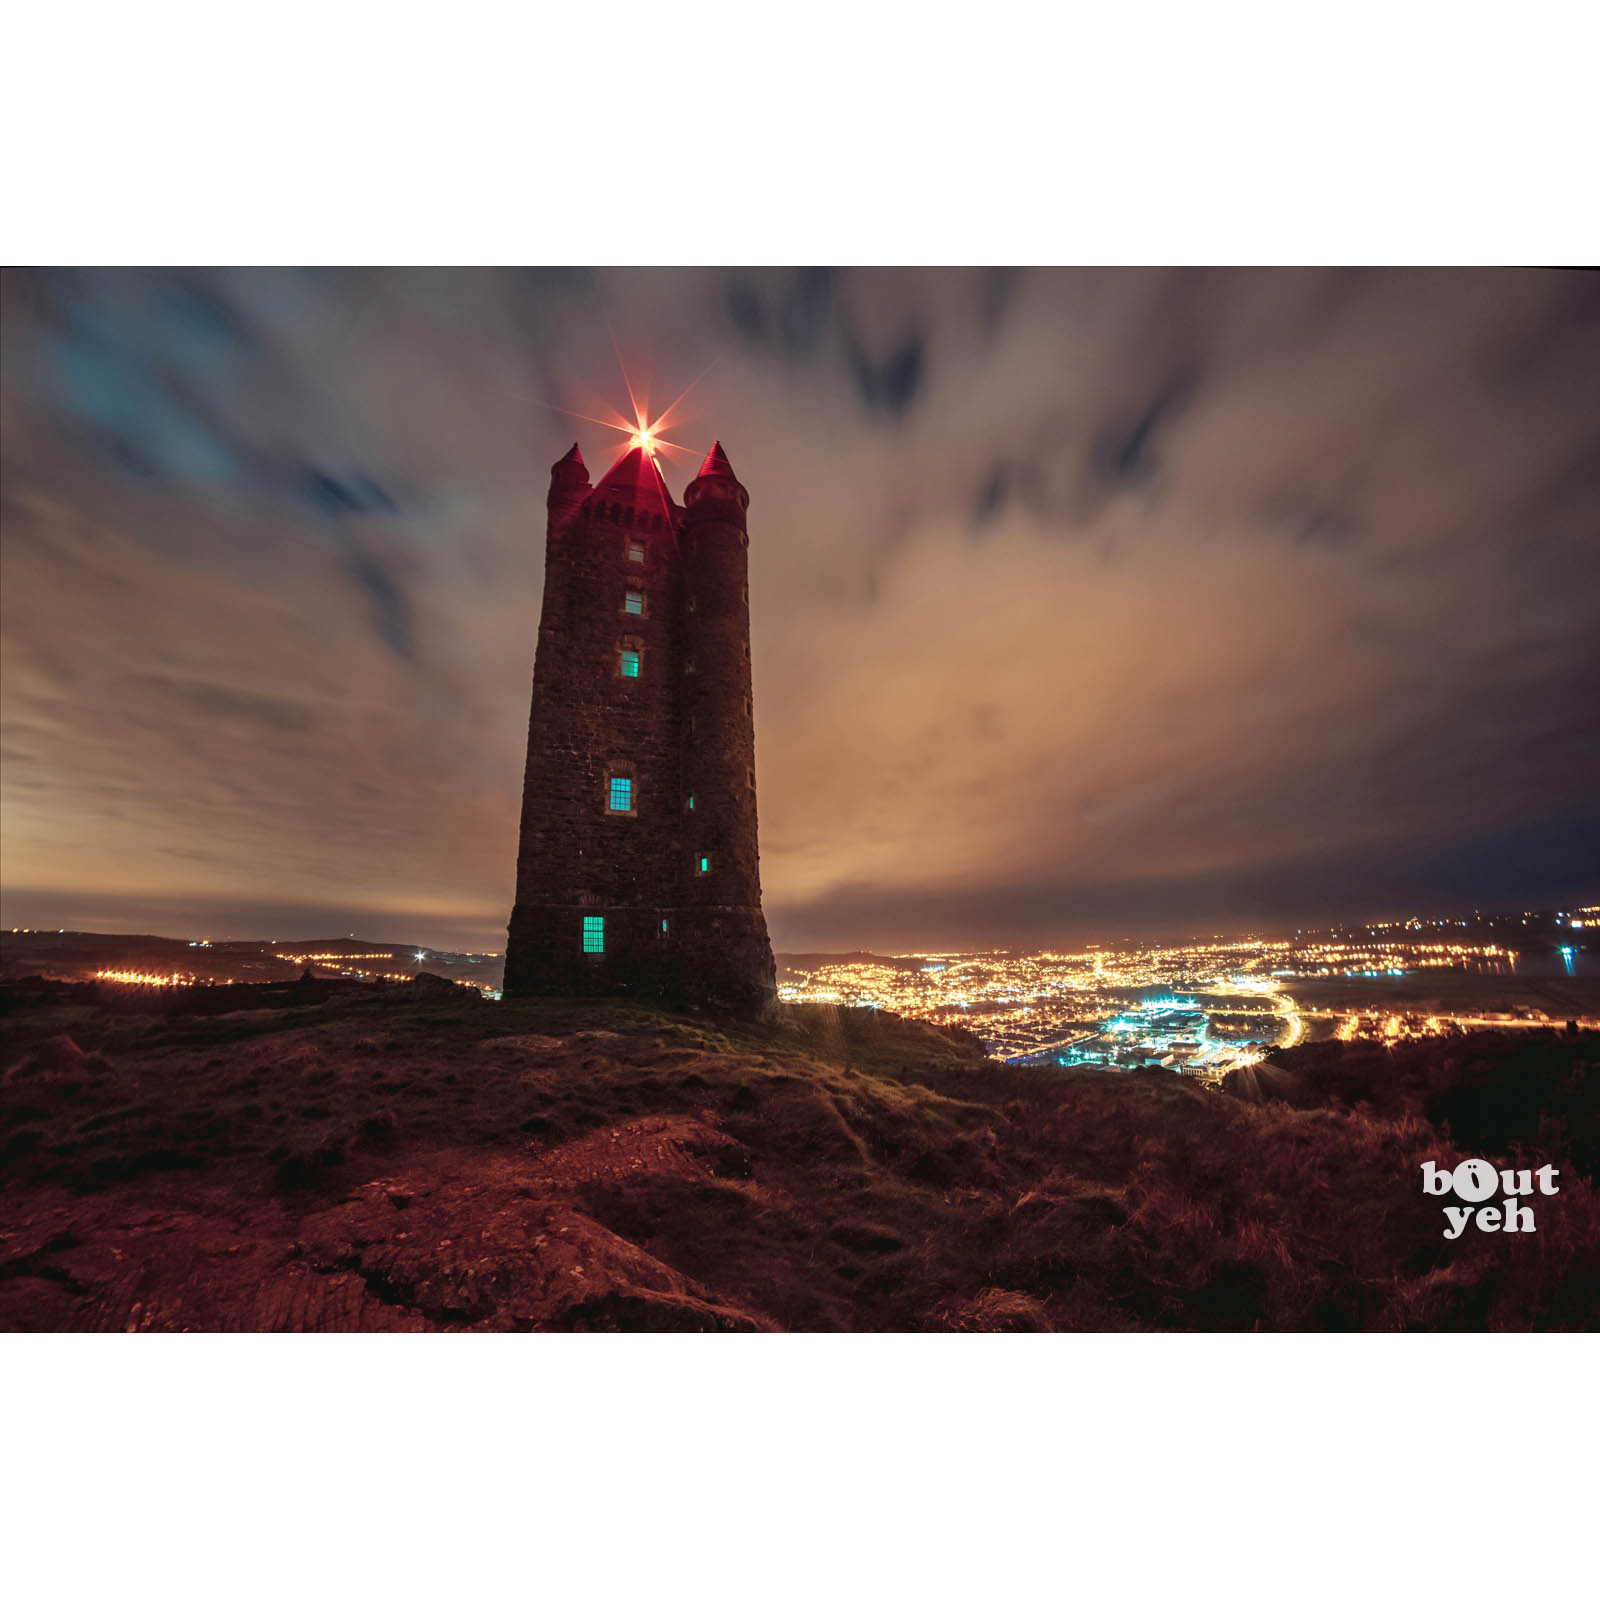 Image - Scrabo Tower Northern Ireland by rskb - photographic print for sale.